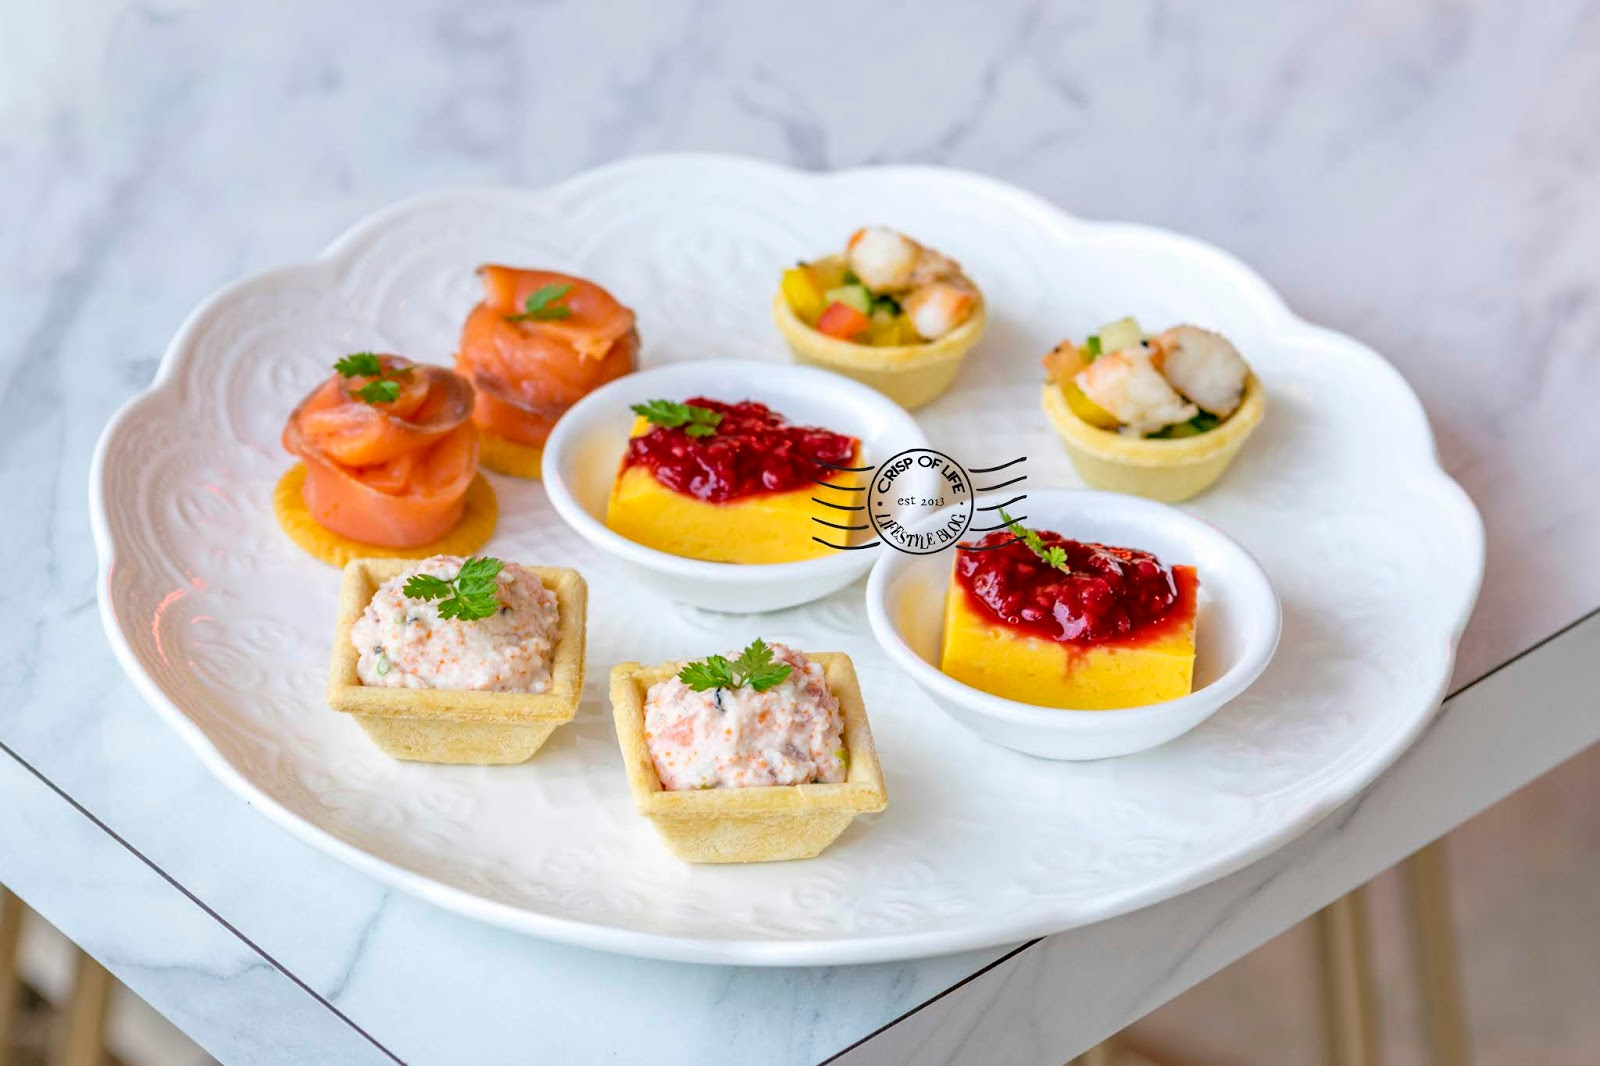 Crumbles & Cream High Tea Set & Newly Launched Ala Carte Menu @ Iconic Hotel, Penang